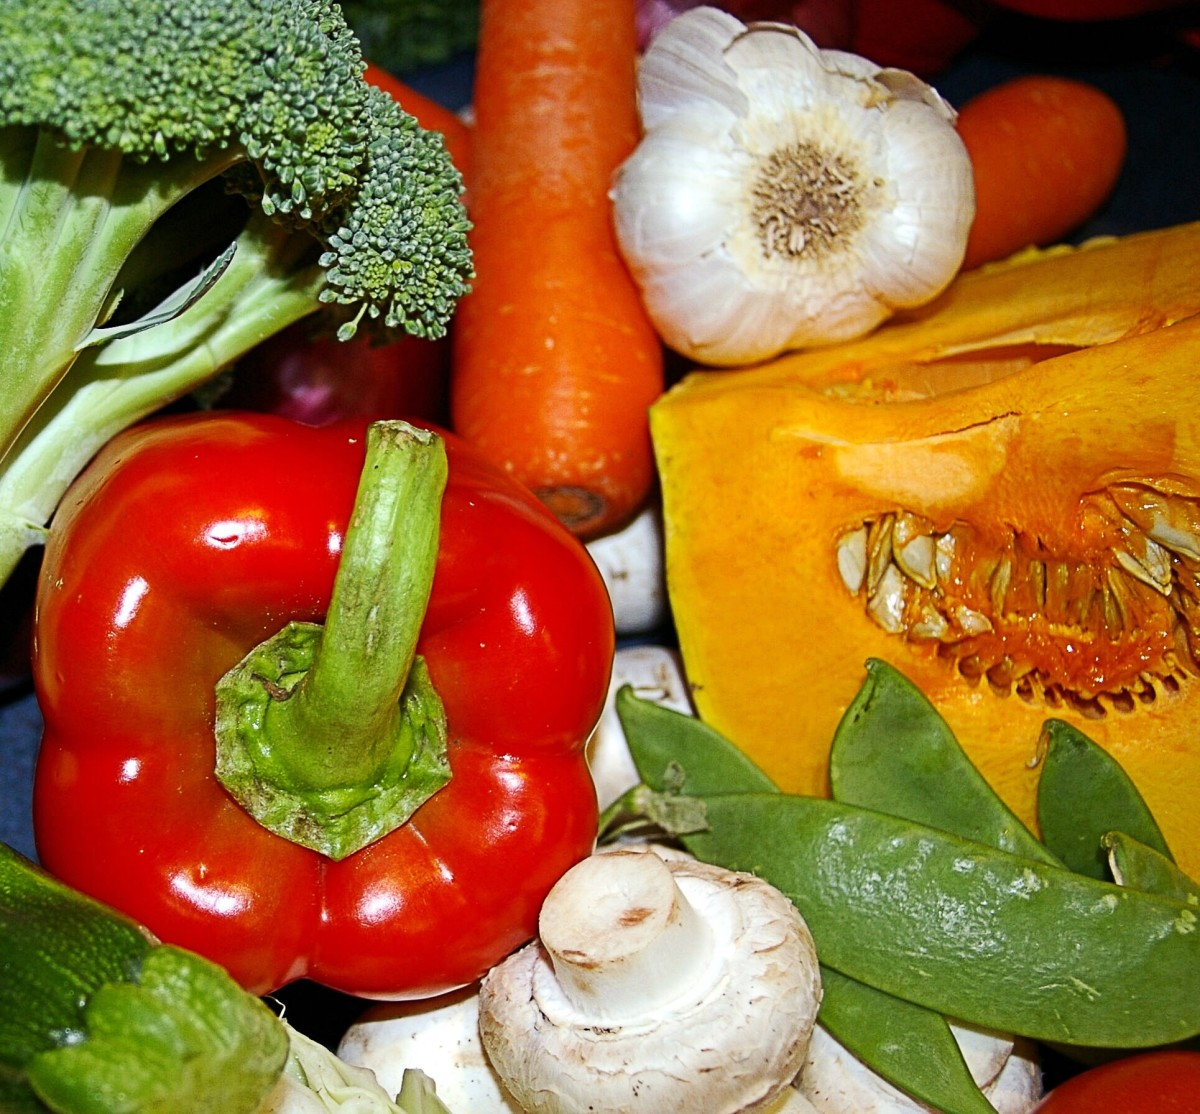 A healthy diet that includes vegetables may boost the immune system and help to keep the Epstein-Barr virus under control.